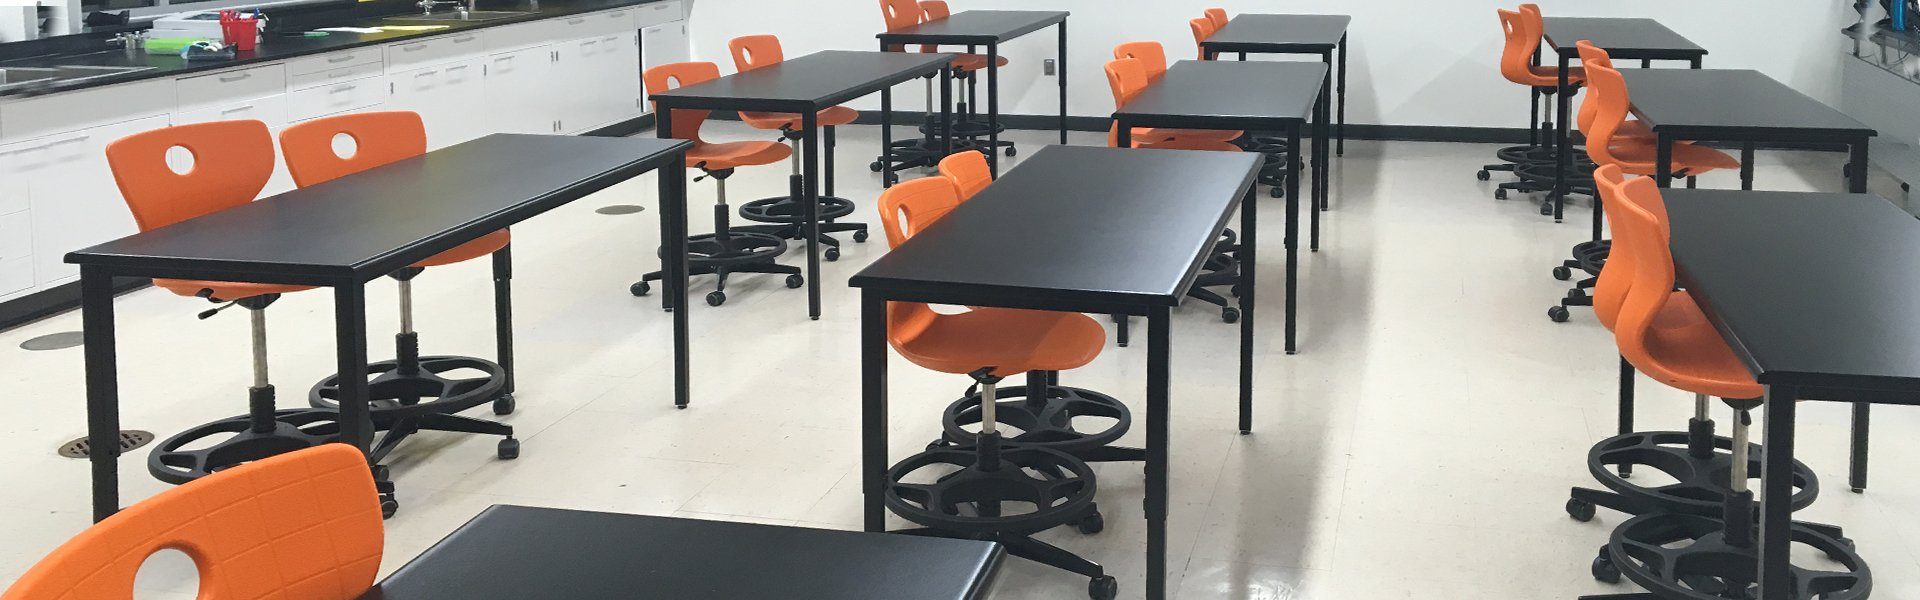 Corilam Adjustable Desk Height Classroom Lab